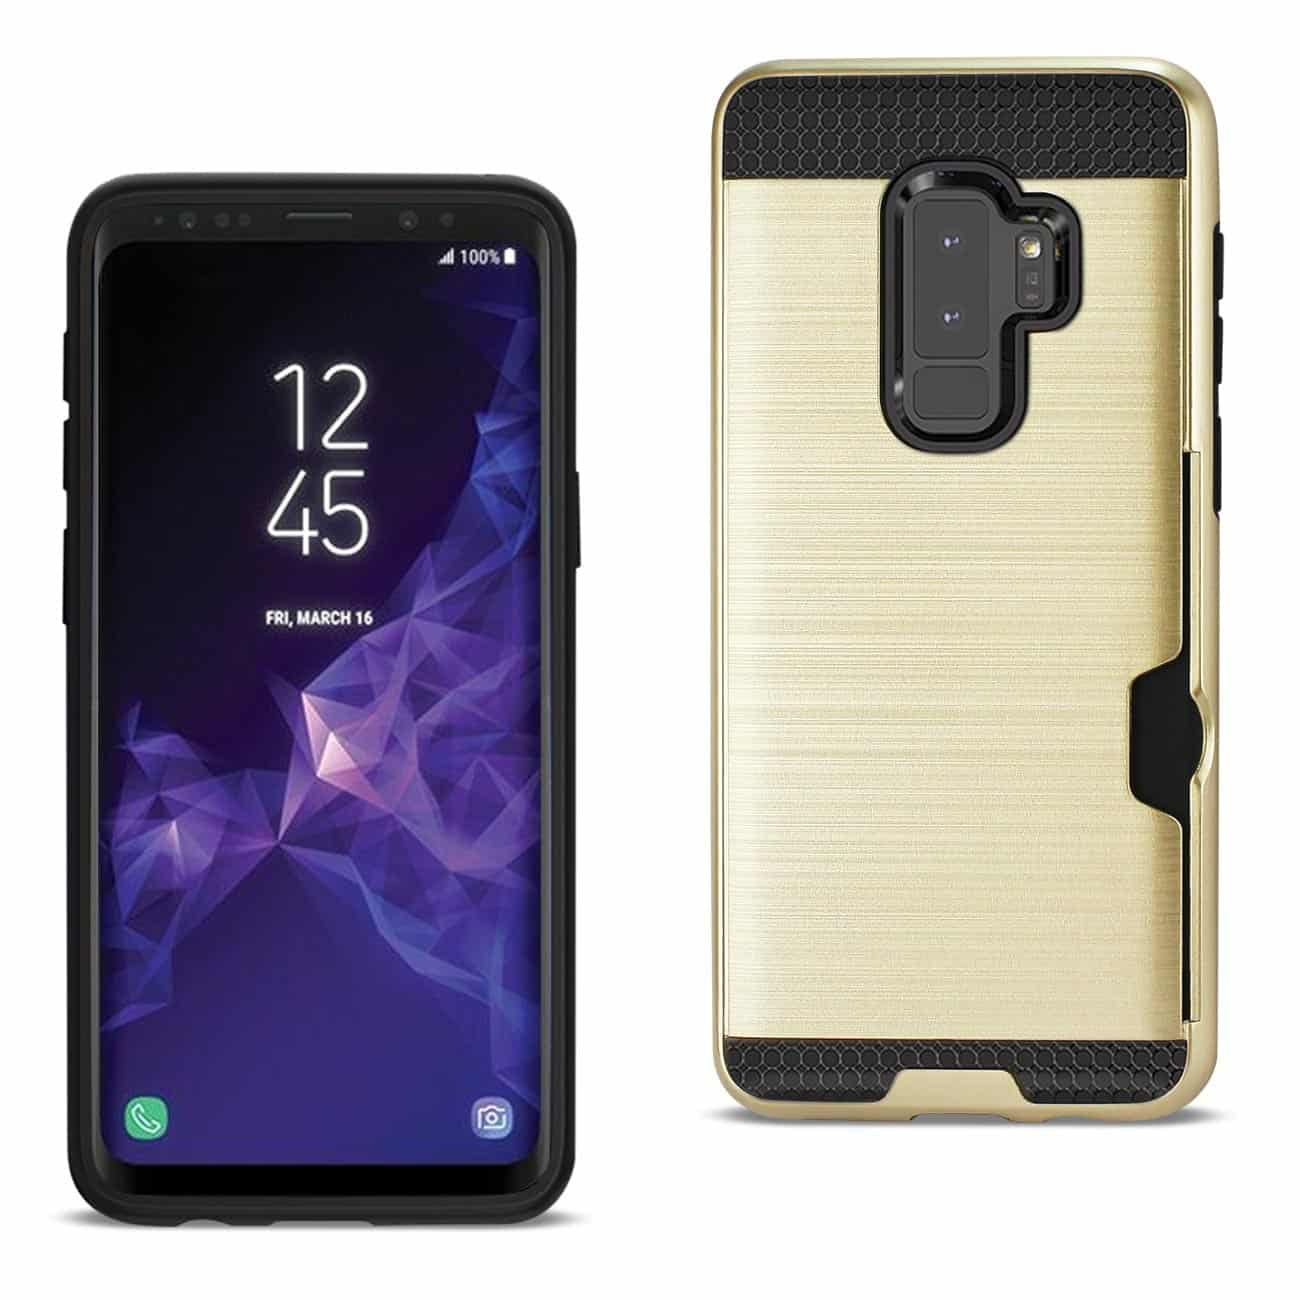 Samsung Galaxy S9 Plus Slim Armor Hybrid Case With Card Holder In Gold